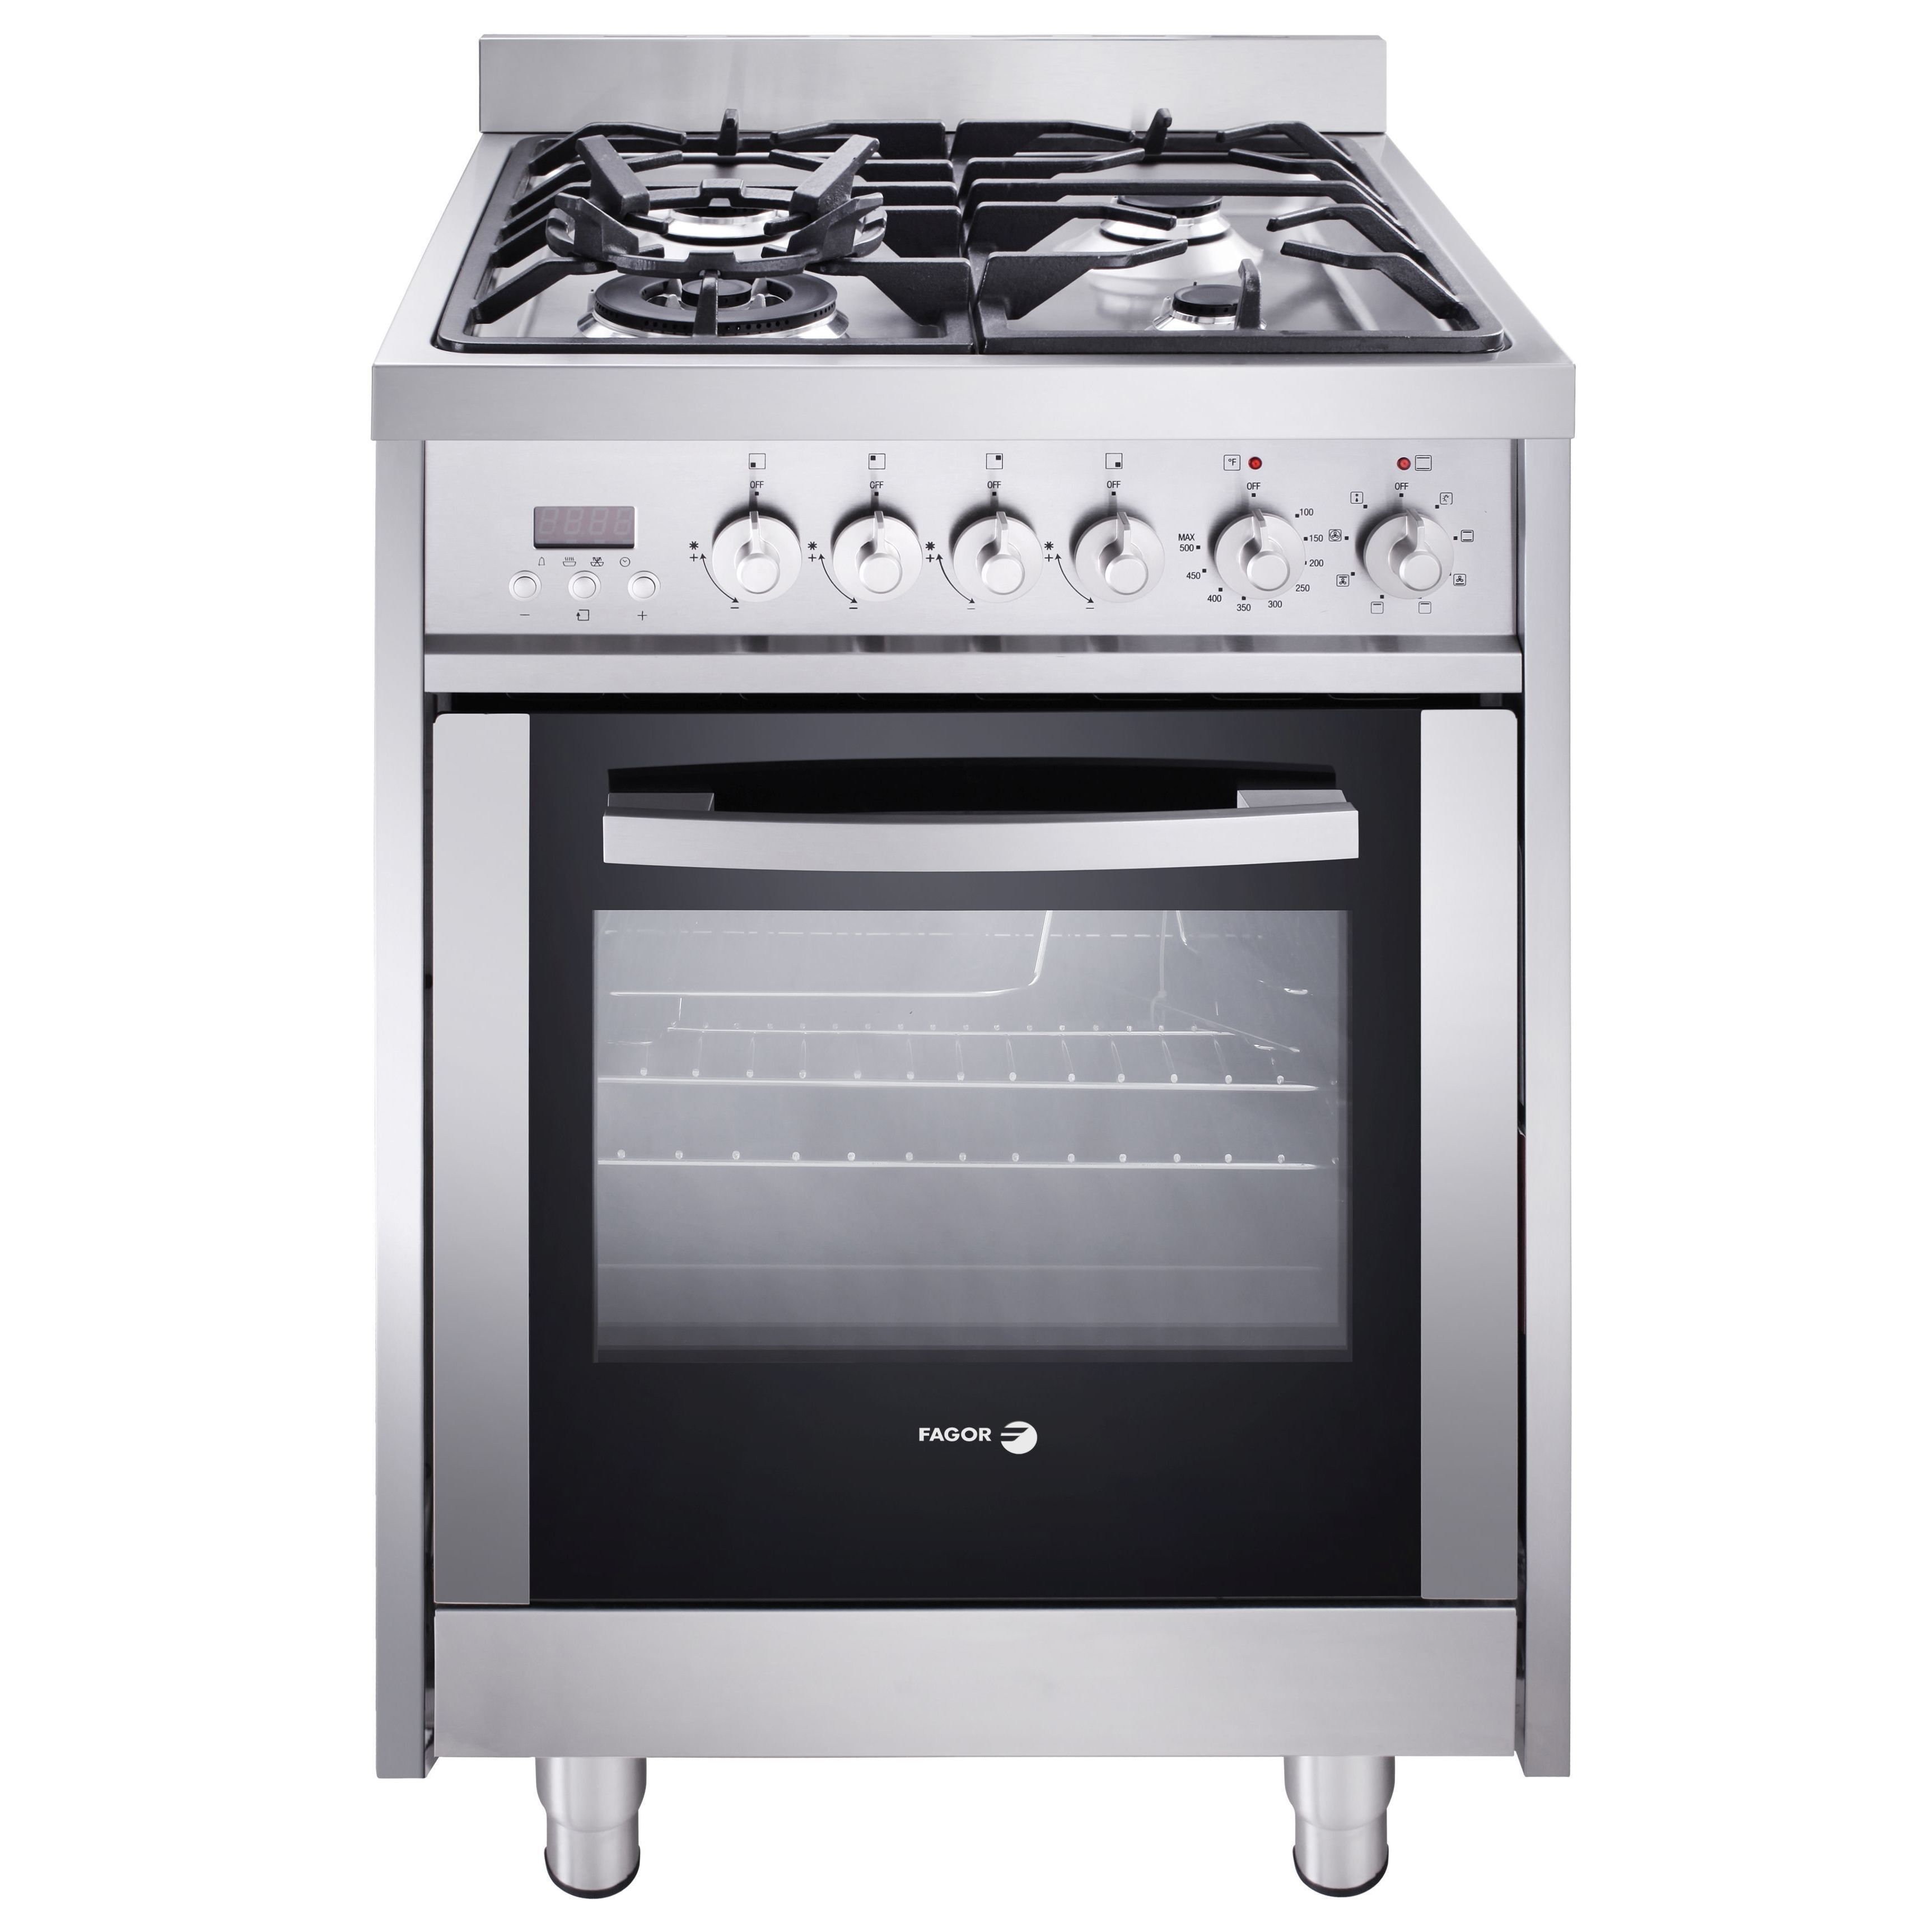 24inch Dual Fuel Range Skinny kitchen, Cooking